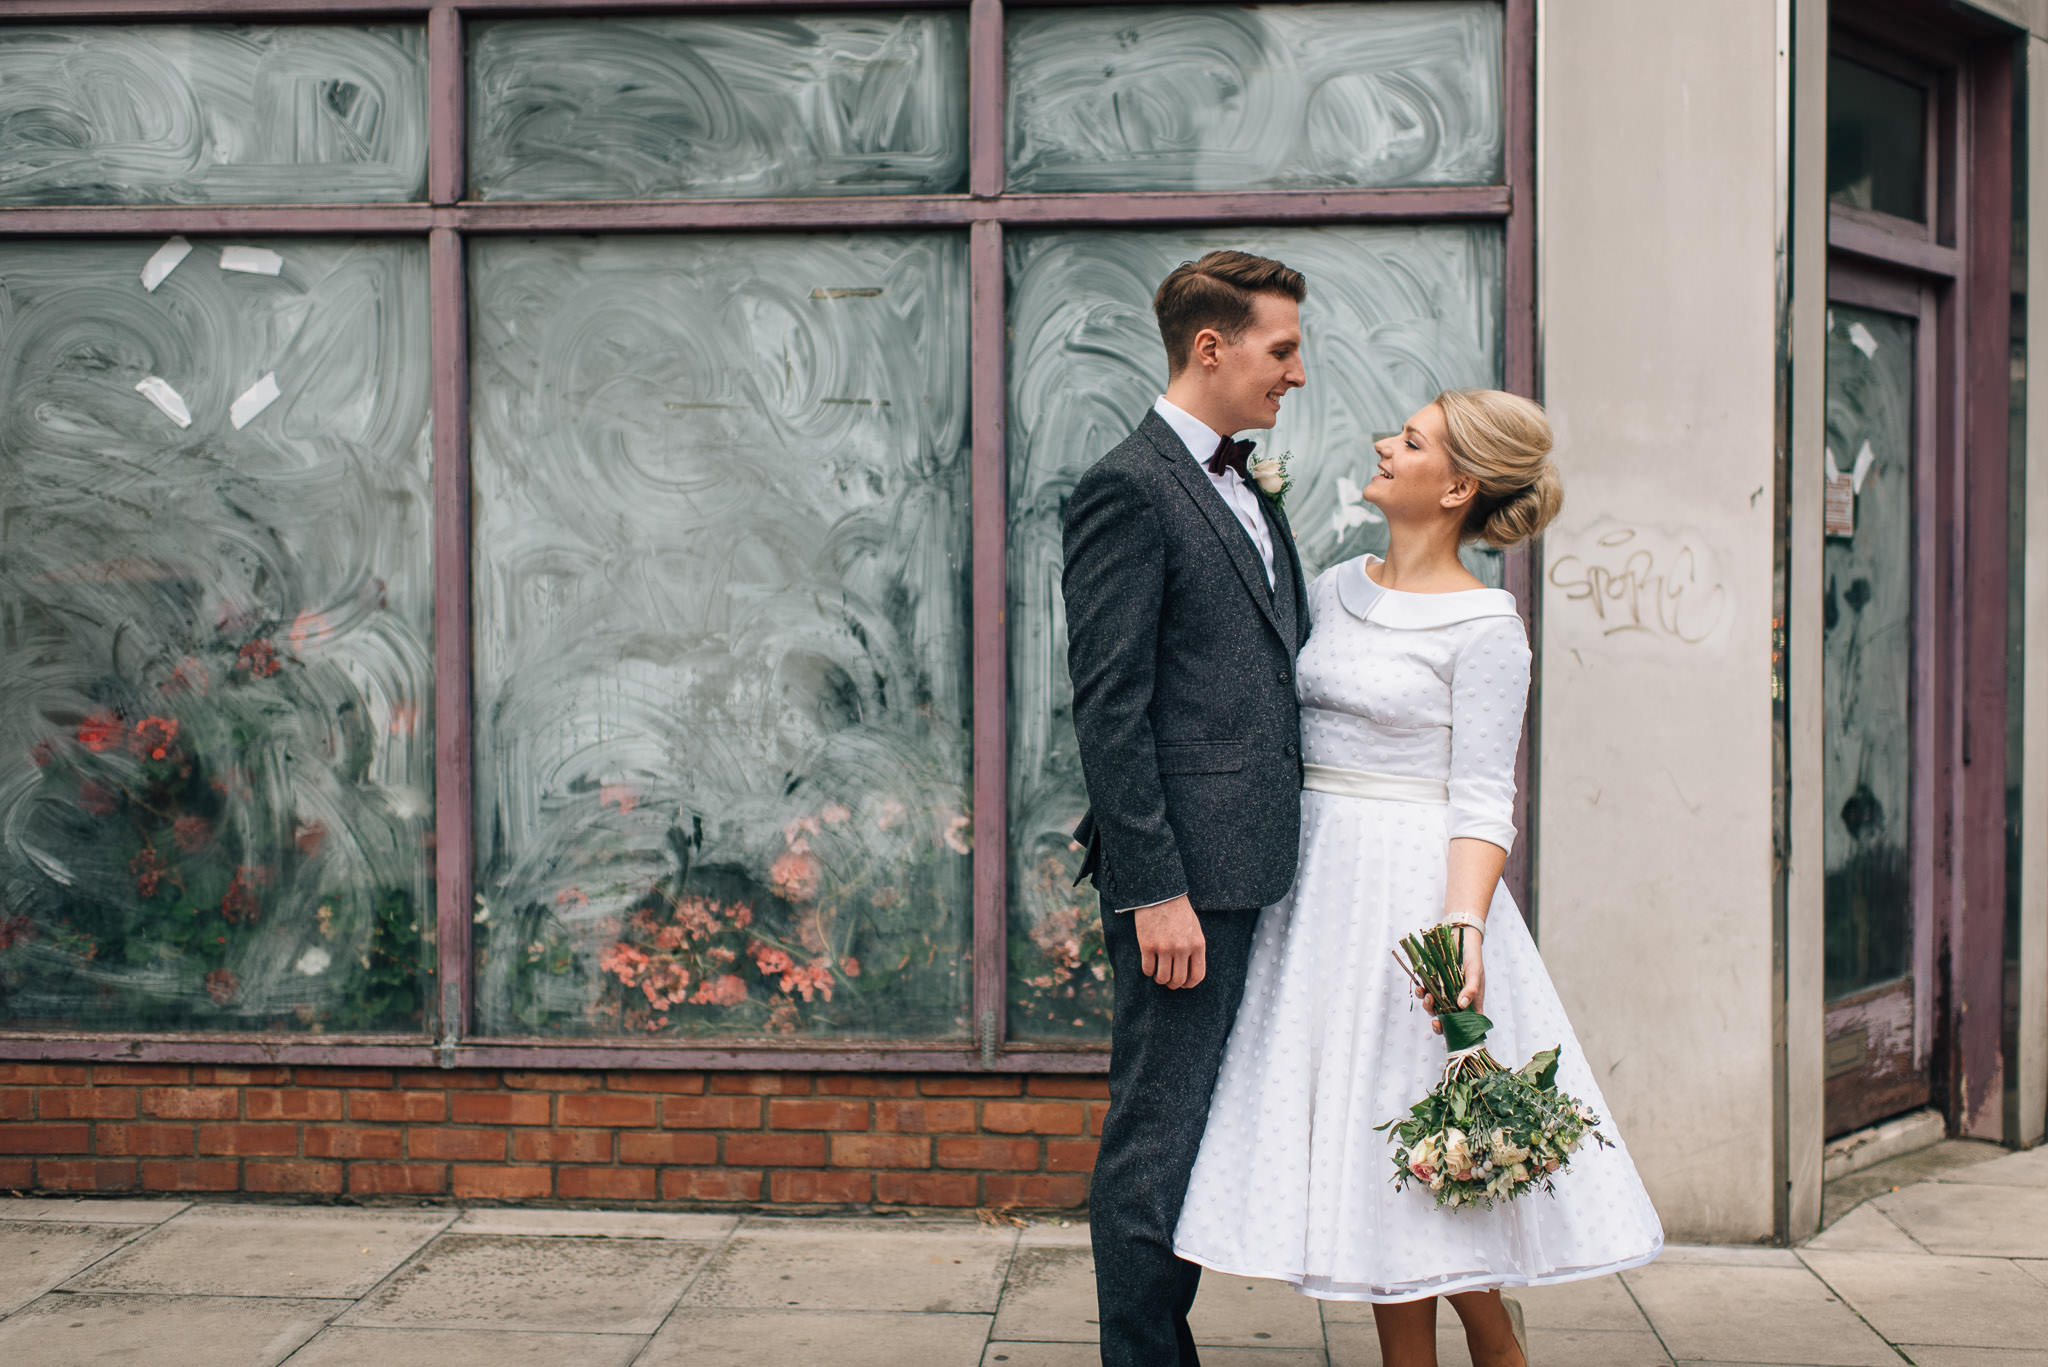 Couples portraits in stoke newington town hall wedding by creative and alternative london wedding photographer the shannons photography